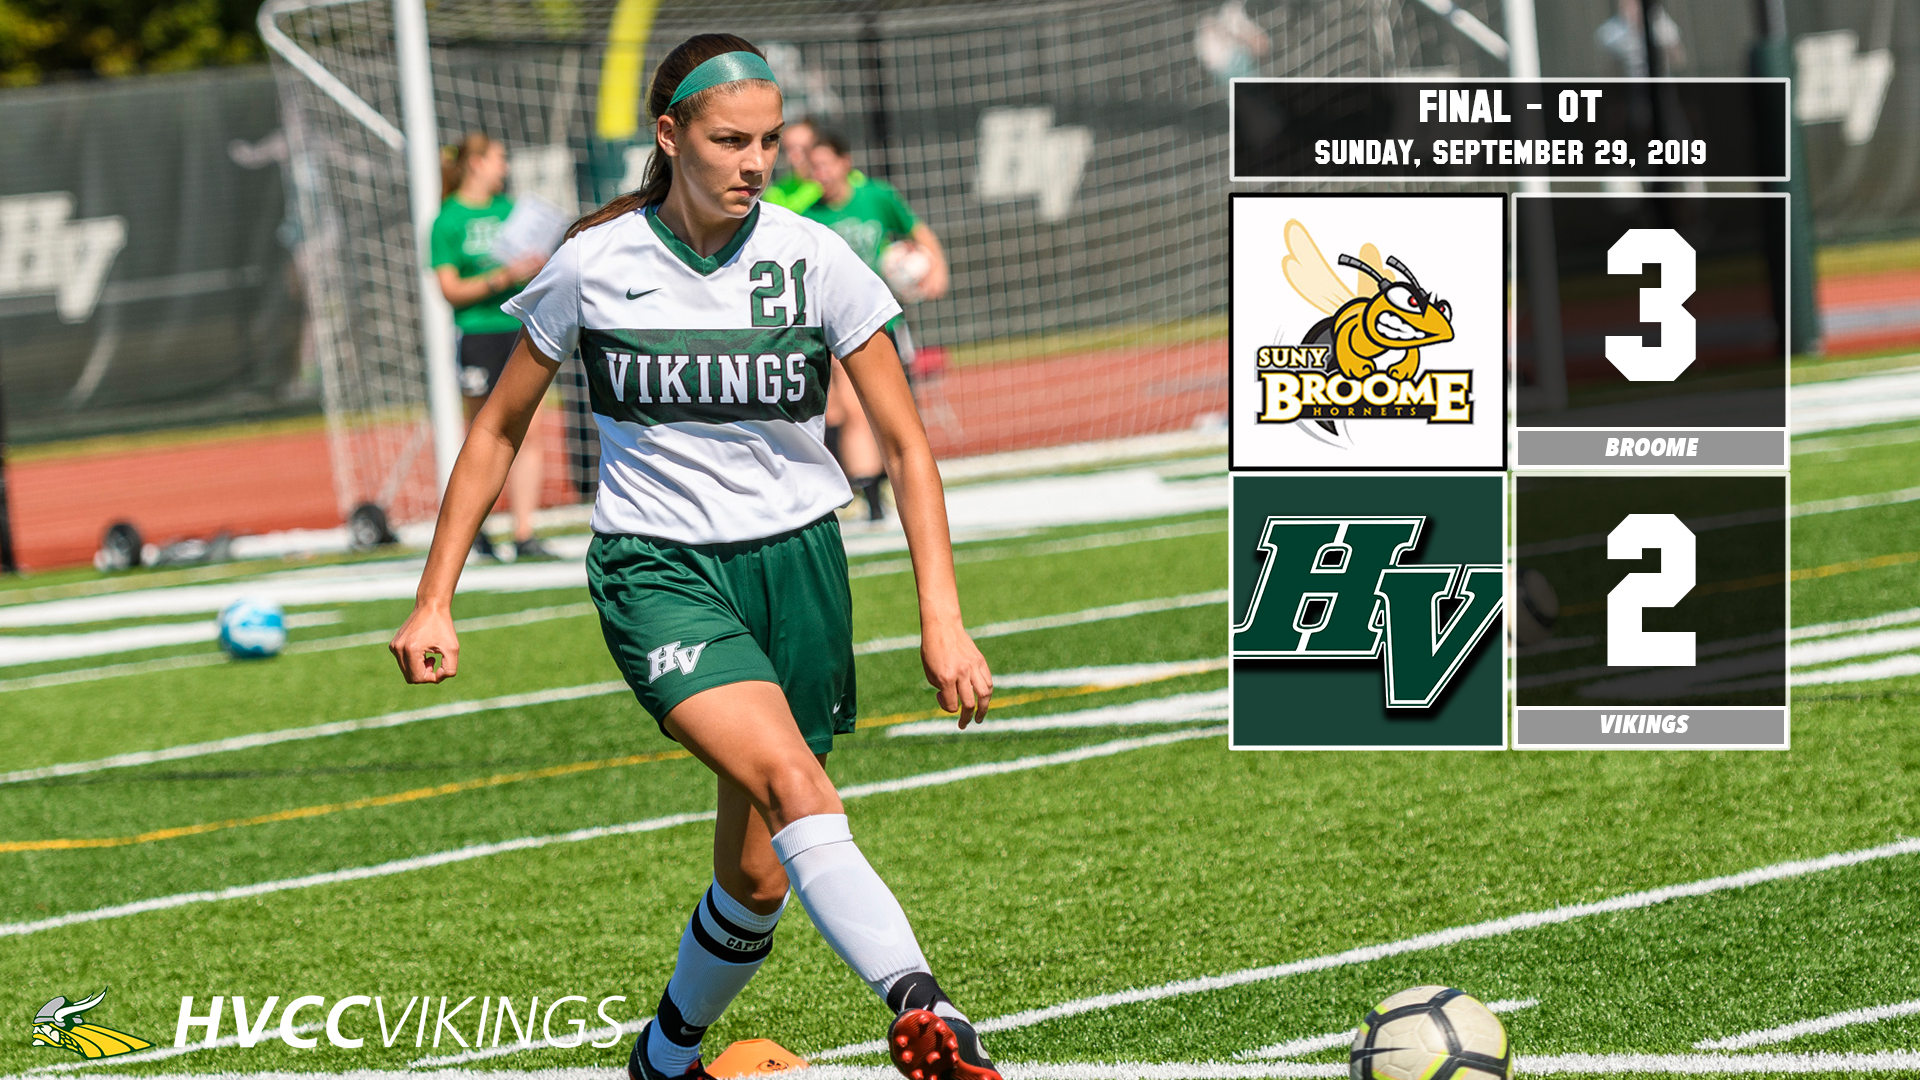 Women's soccer lost 3-2 in overtime at Broome on 9/29/19.